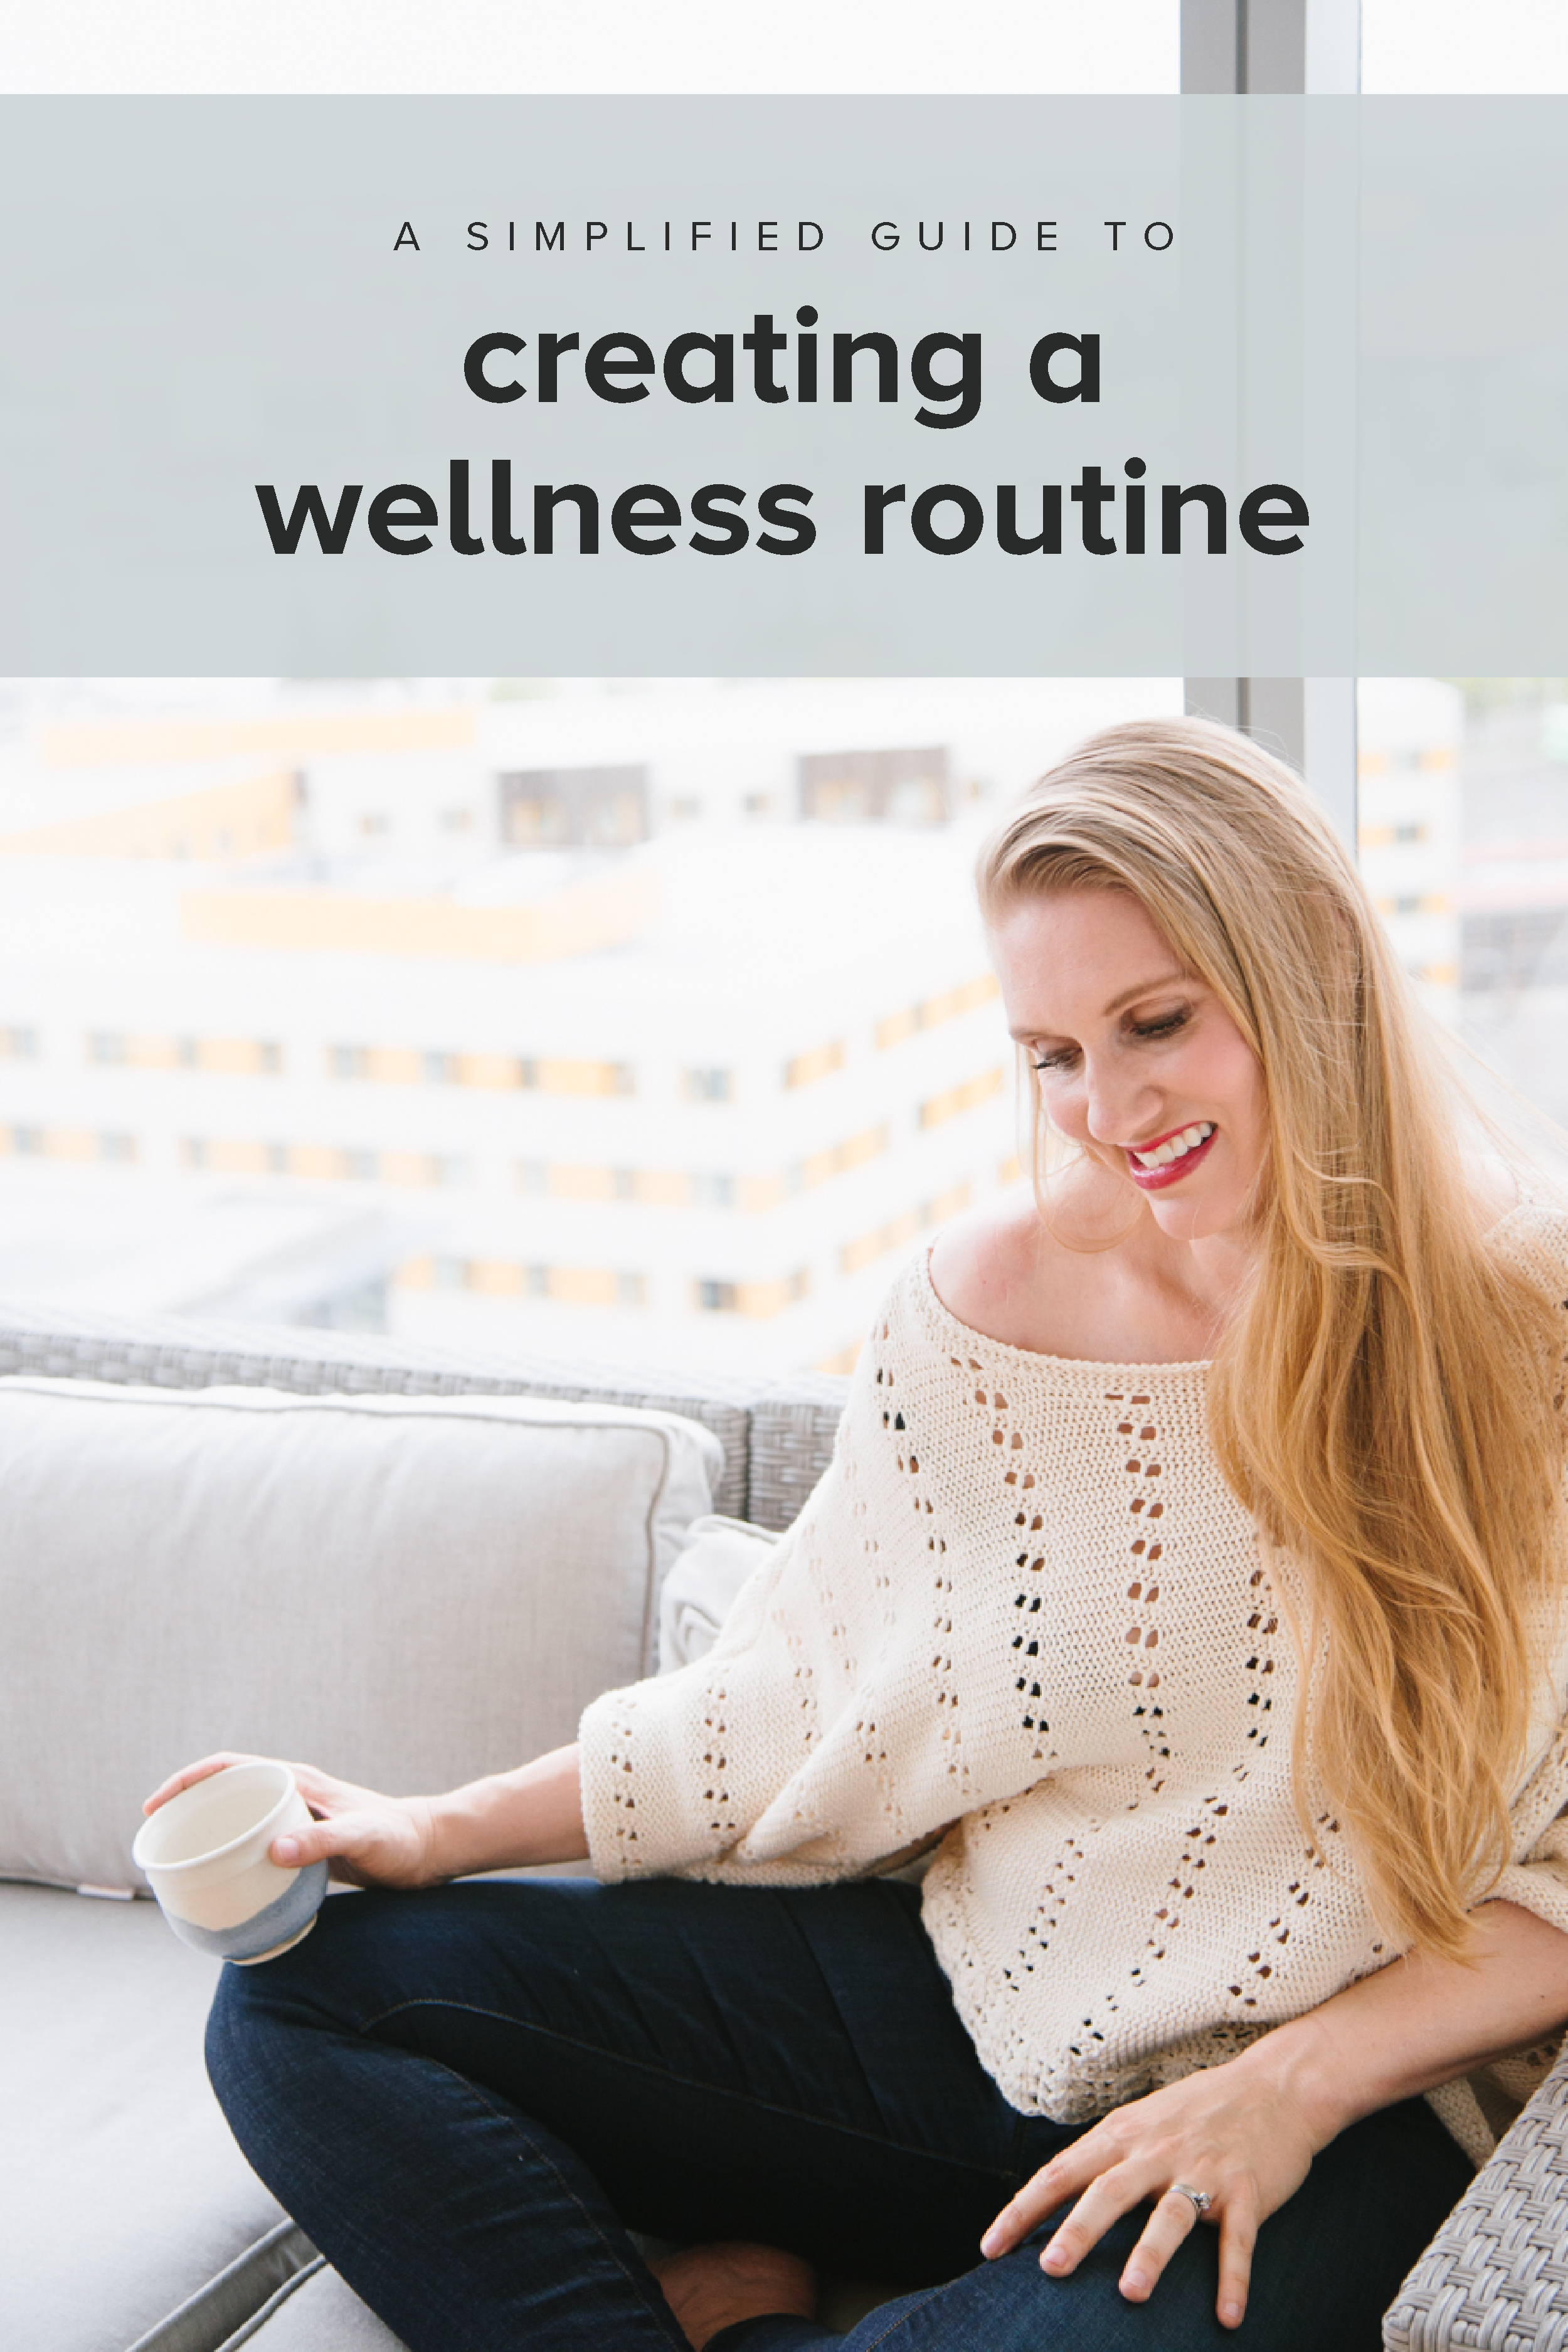 A simplified guide to creating a wellness routine that you can actually stick to. #feelgoodeffect #realfoodwholelife #gentleisthenewperfect #practicegentle #selfcare #selflove #wellness #routine